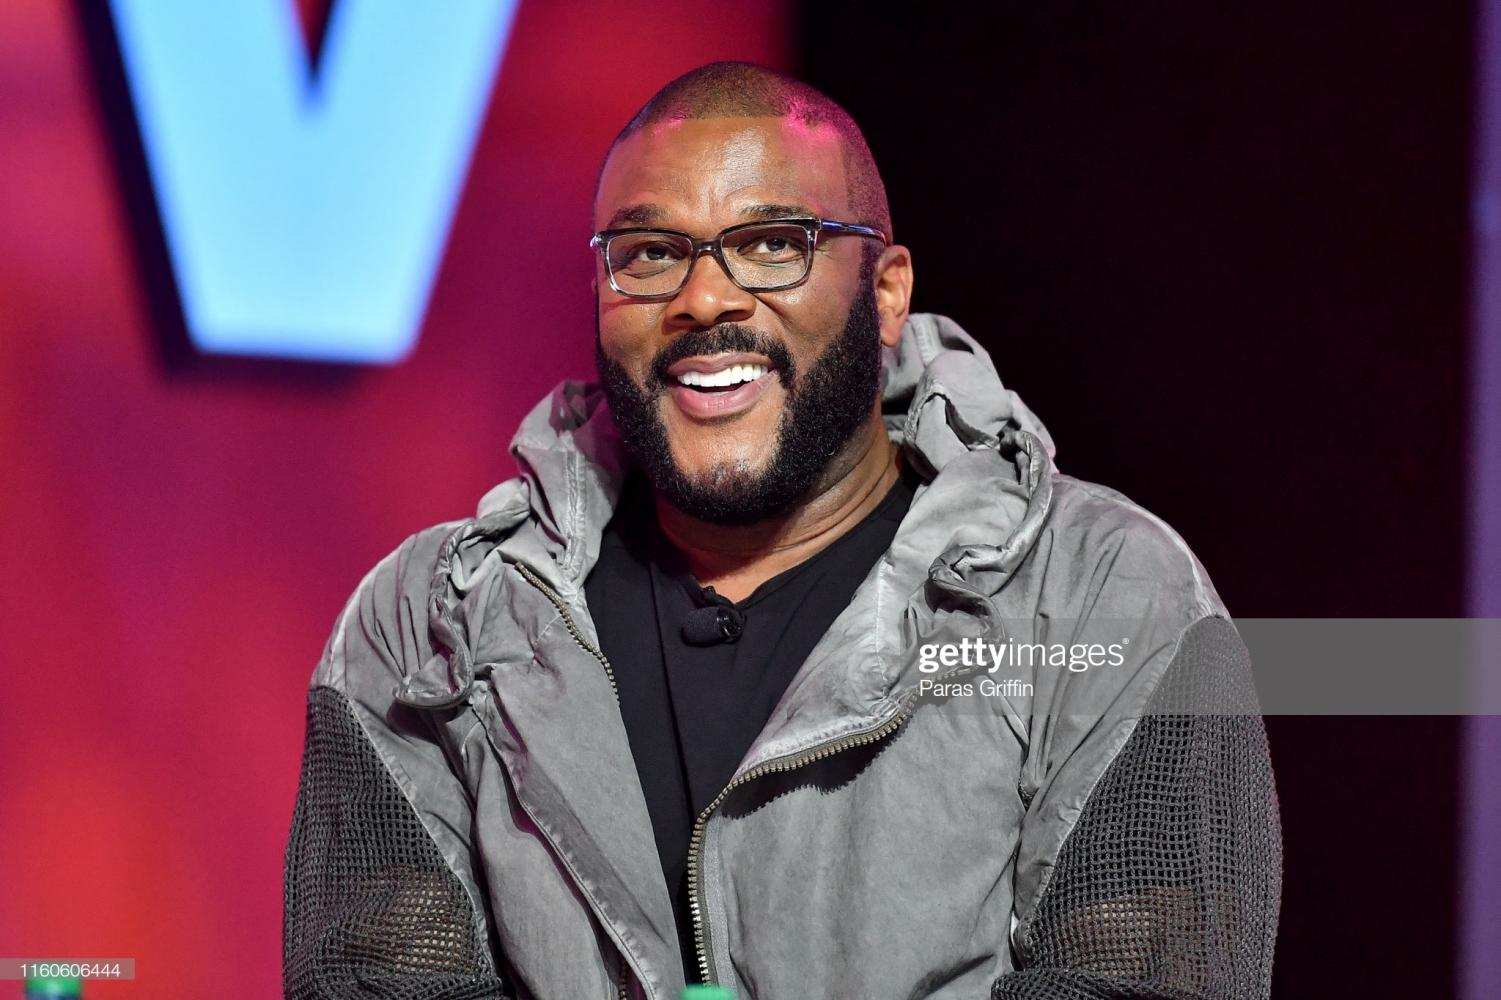 NEW ORLEANS, LOUISIANA - JULY 07: Tyler Perry speaks on stage at 2019 ESSENCE Festival Presented By Coca-Cola at Ernest N. Morial Convention Center on July 07, 2019 in New Orleans, Louisiana